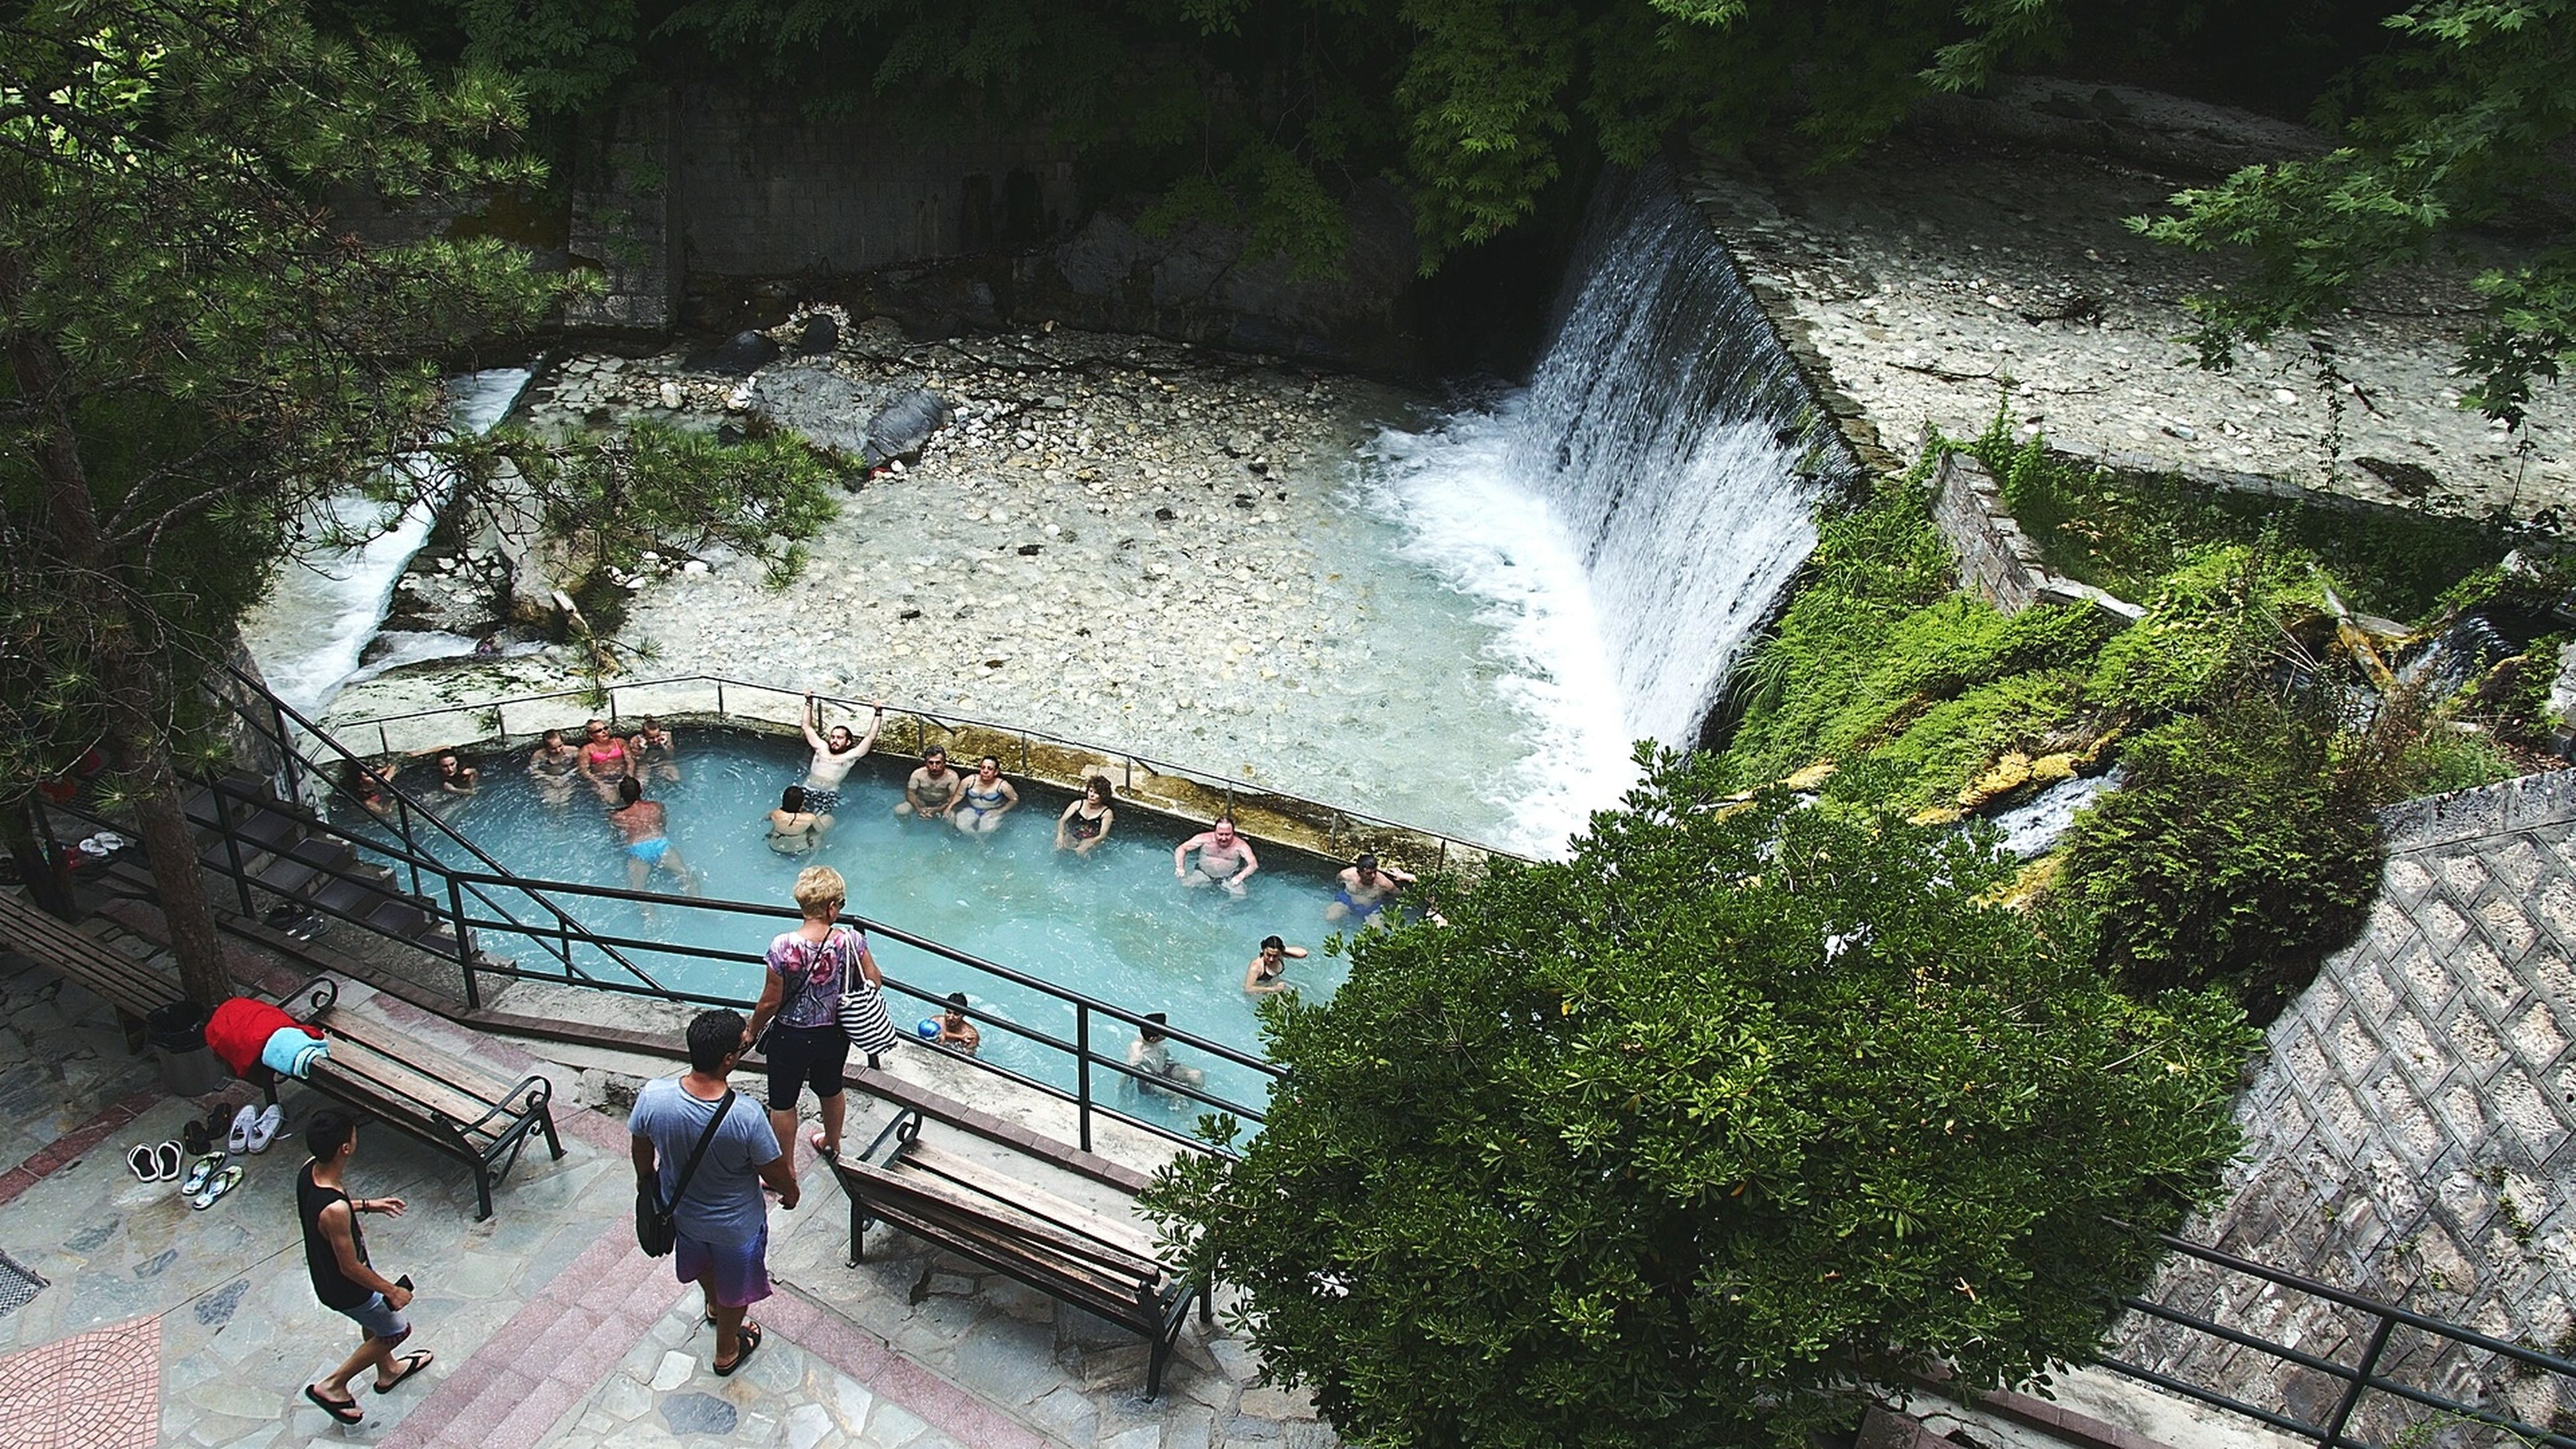 men, lifestyles, water, leisure activity, large group of people, person, high angle view, motion, tree, medium group of people, travel, mixed age range, tourist, steps, walking, rock - object, day, waterfall, outdoors